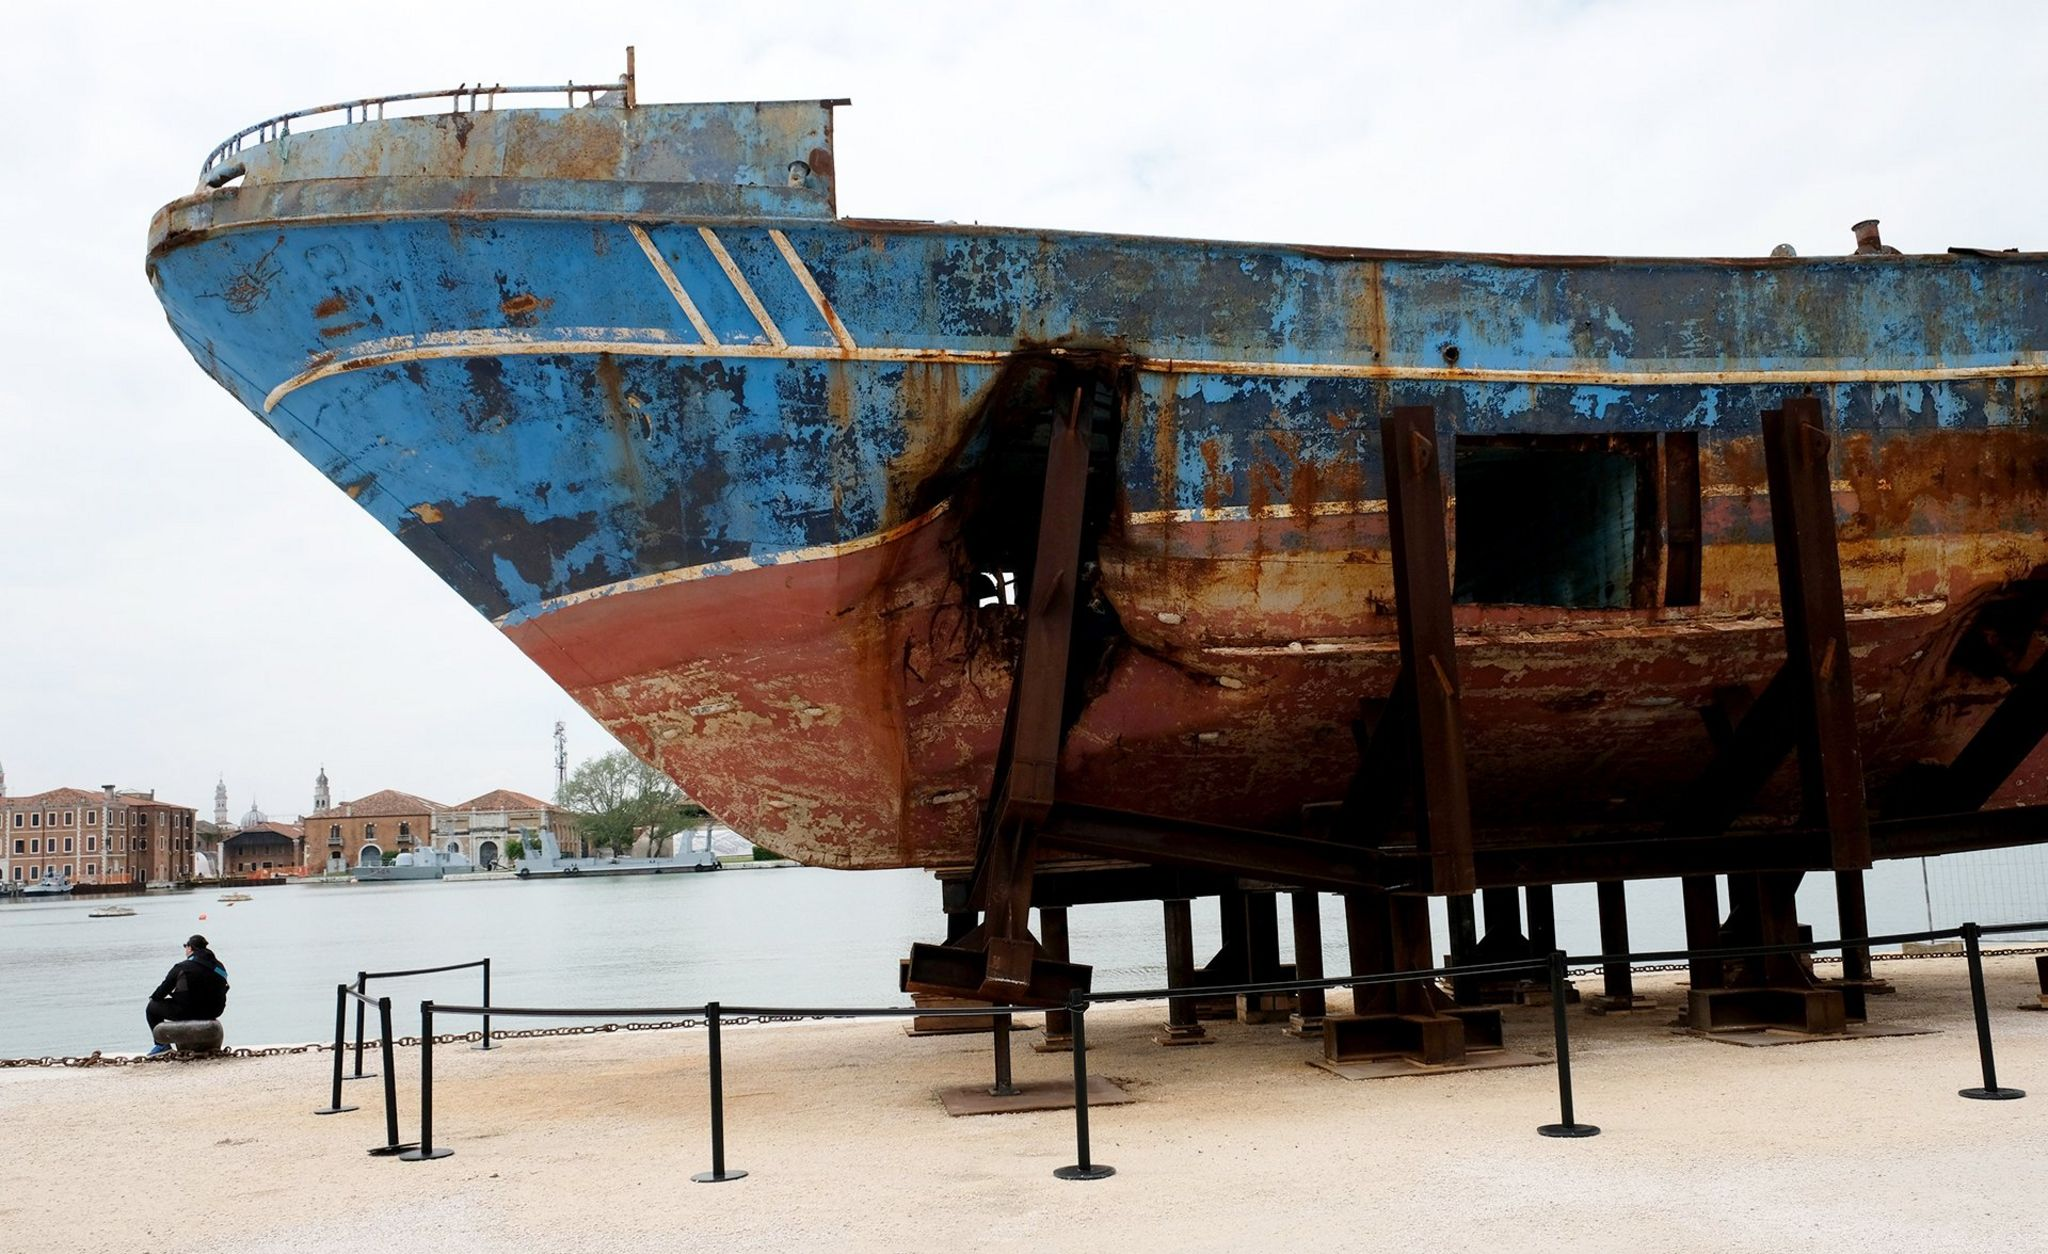 The boat, showing the holes used to retrieve the bodies